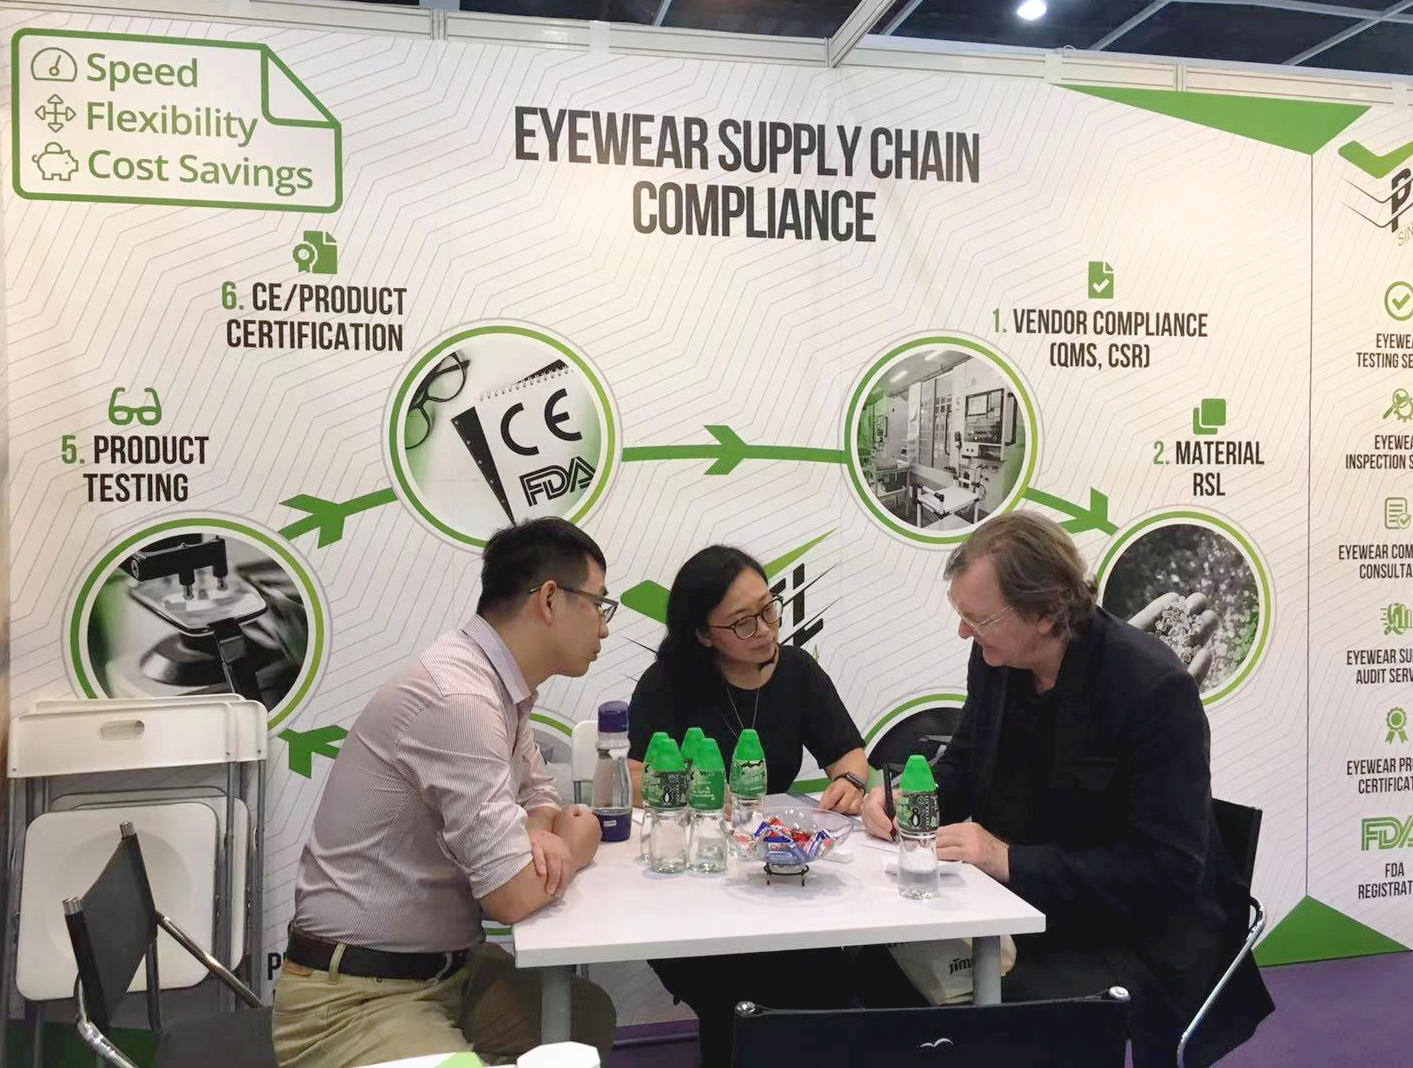 How Can Eyewear Supply Chain Diversification Reduce Your Risk? (HKOF 2019 Highlights)